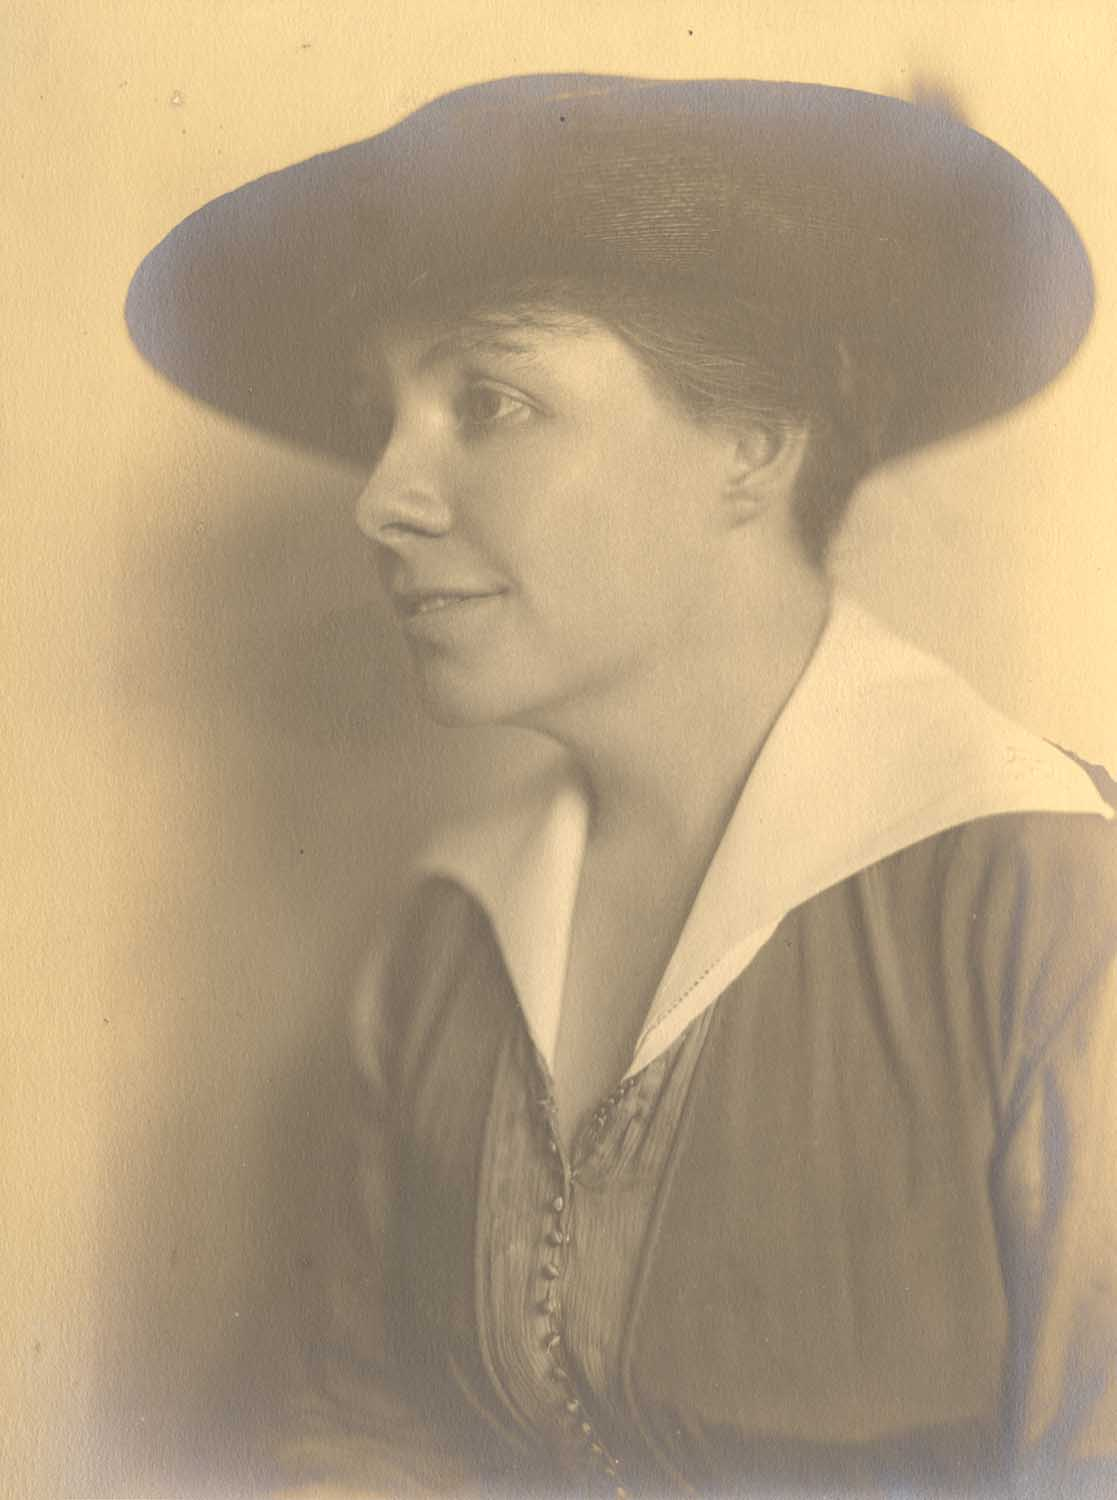 Winifred Meek Morris served as general chairman of the Suffrage Shirtwaist Ball. From the Winifred Meek Morris Papers and Photographs, MSS 1103 Detre Library & Archives at the History Center.